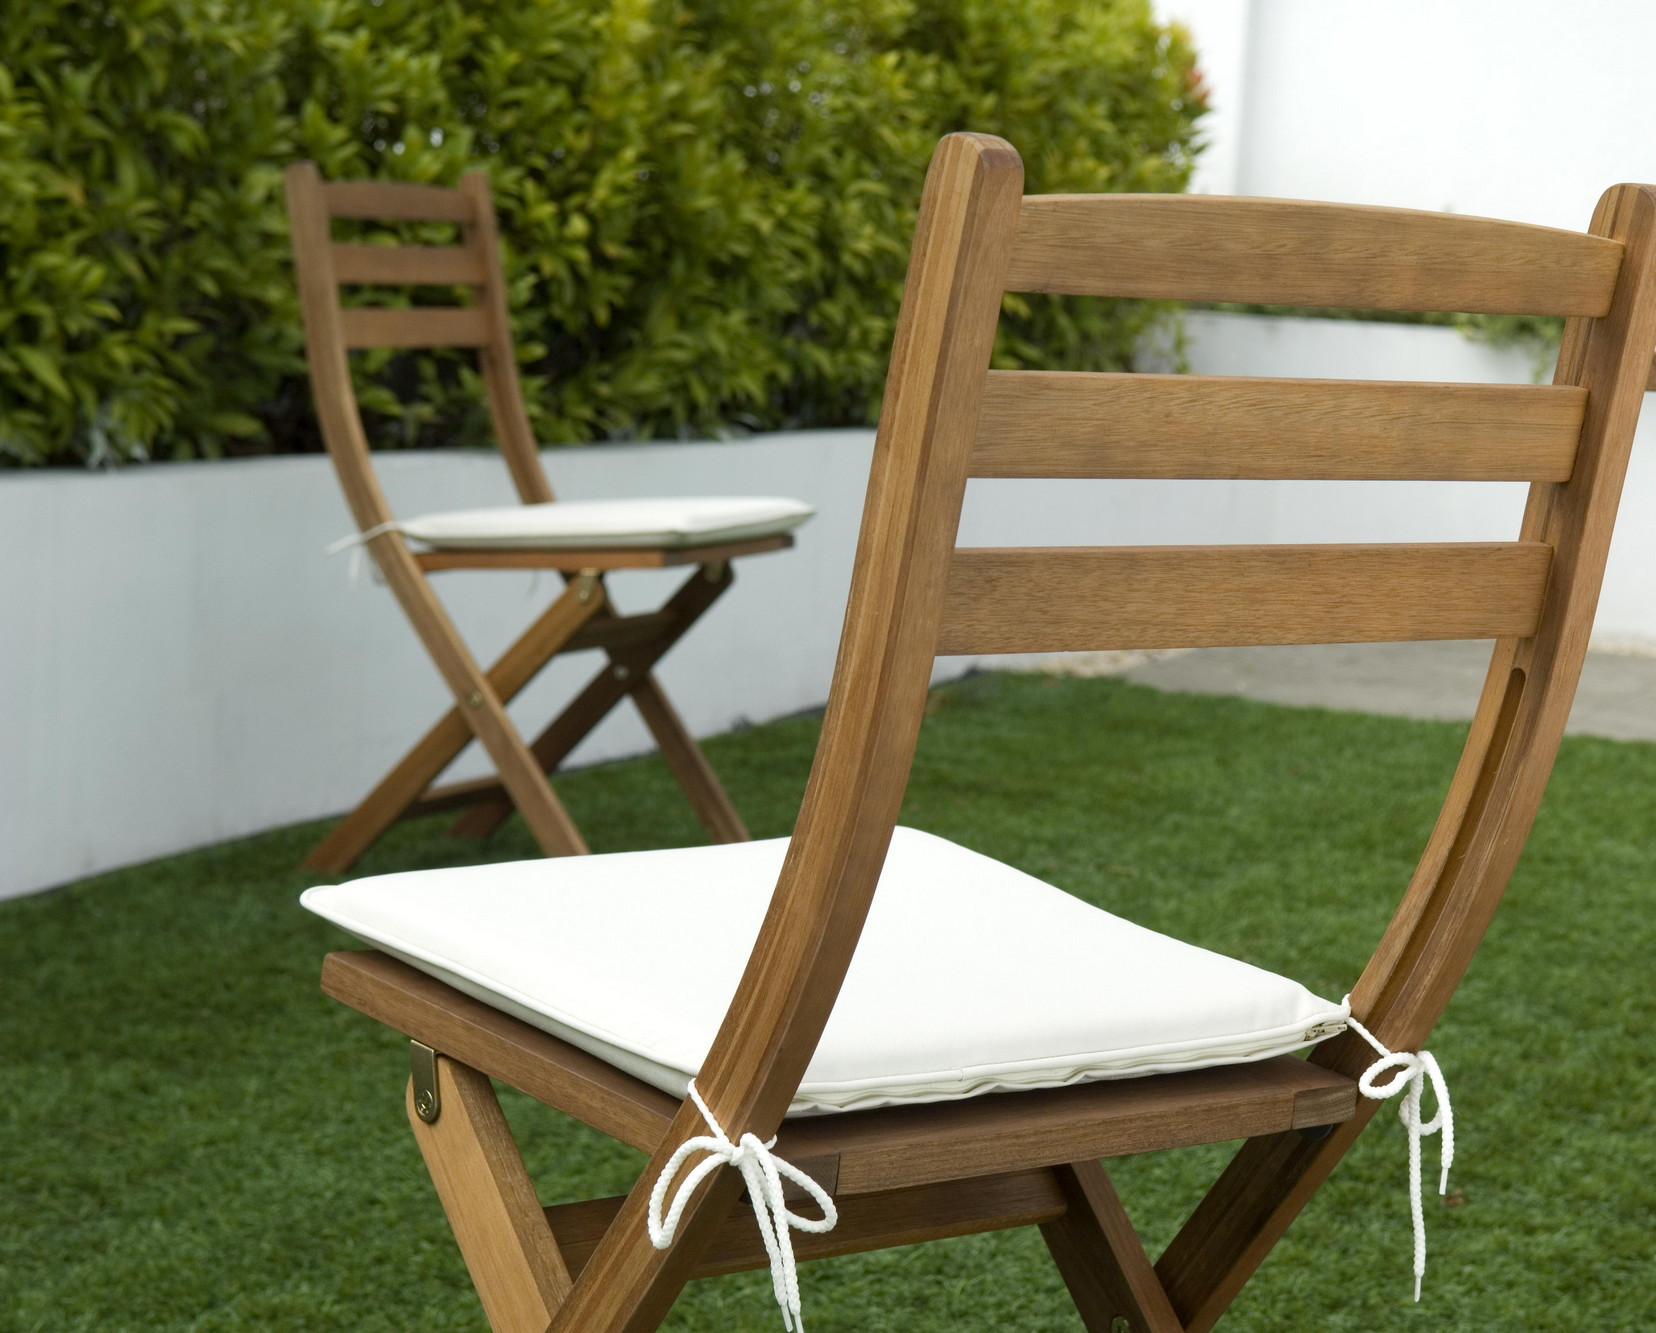 Best ideas about Wooden Patio Furniture . Save or Pin Wood Garden Furniture Buyers Guide from Out and Out Original Now.